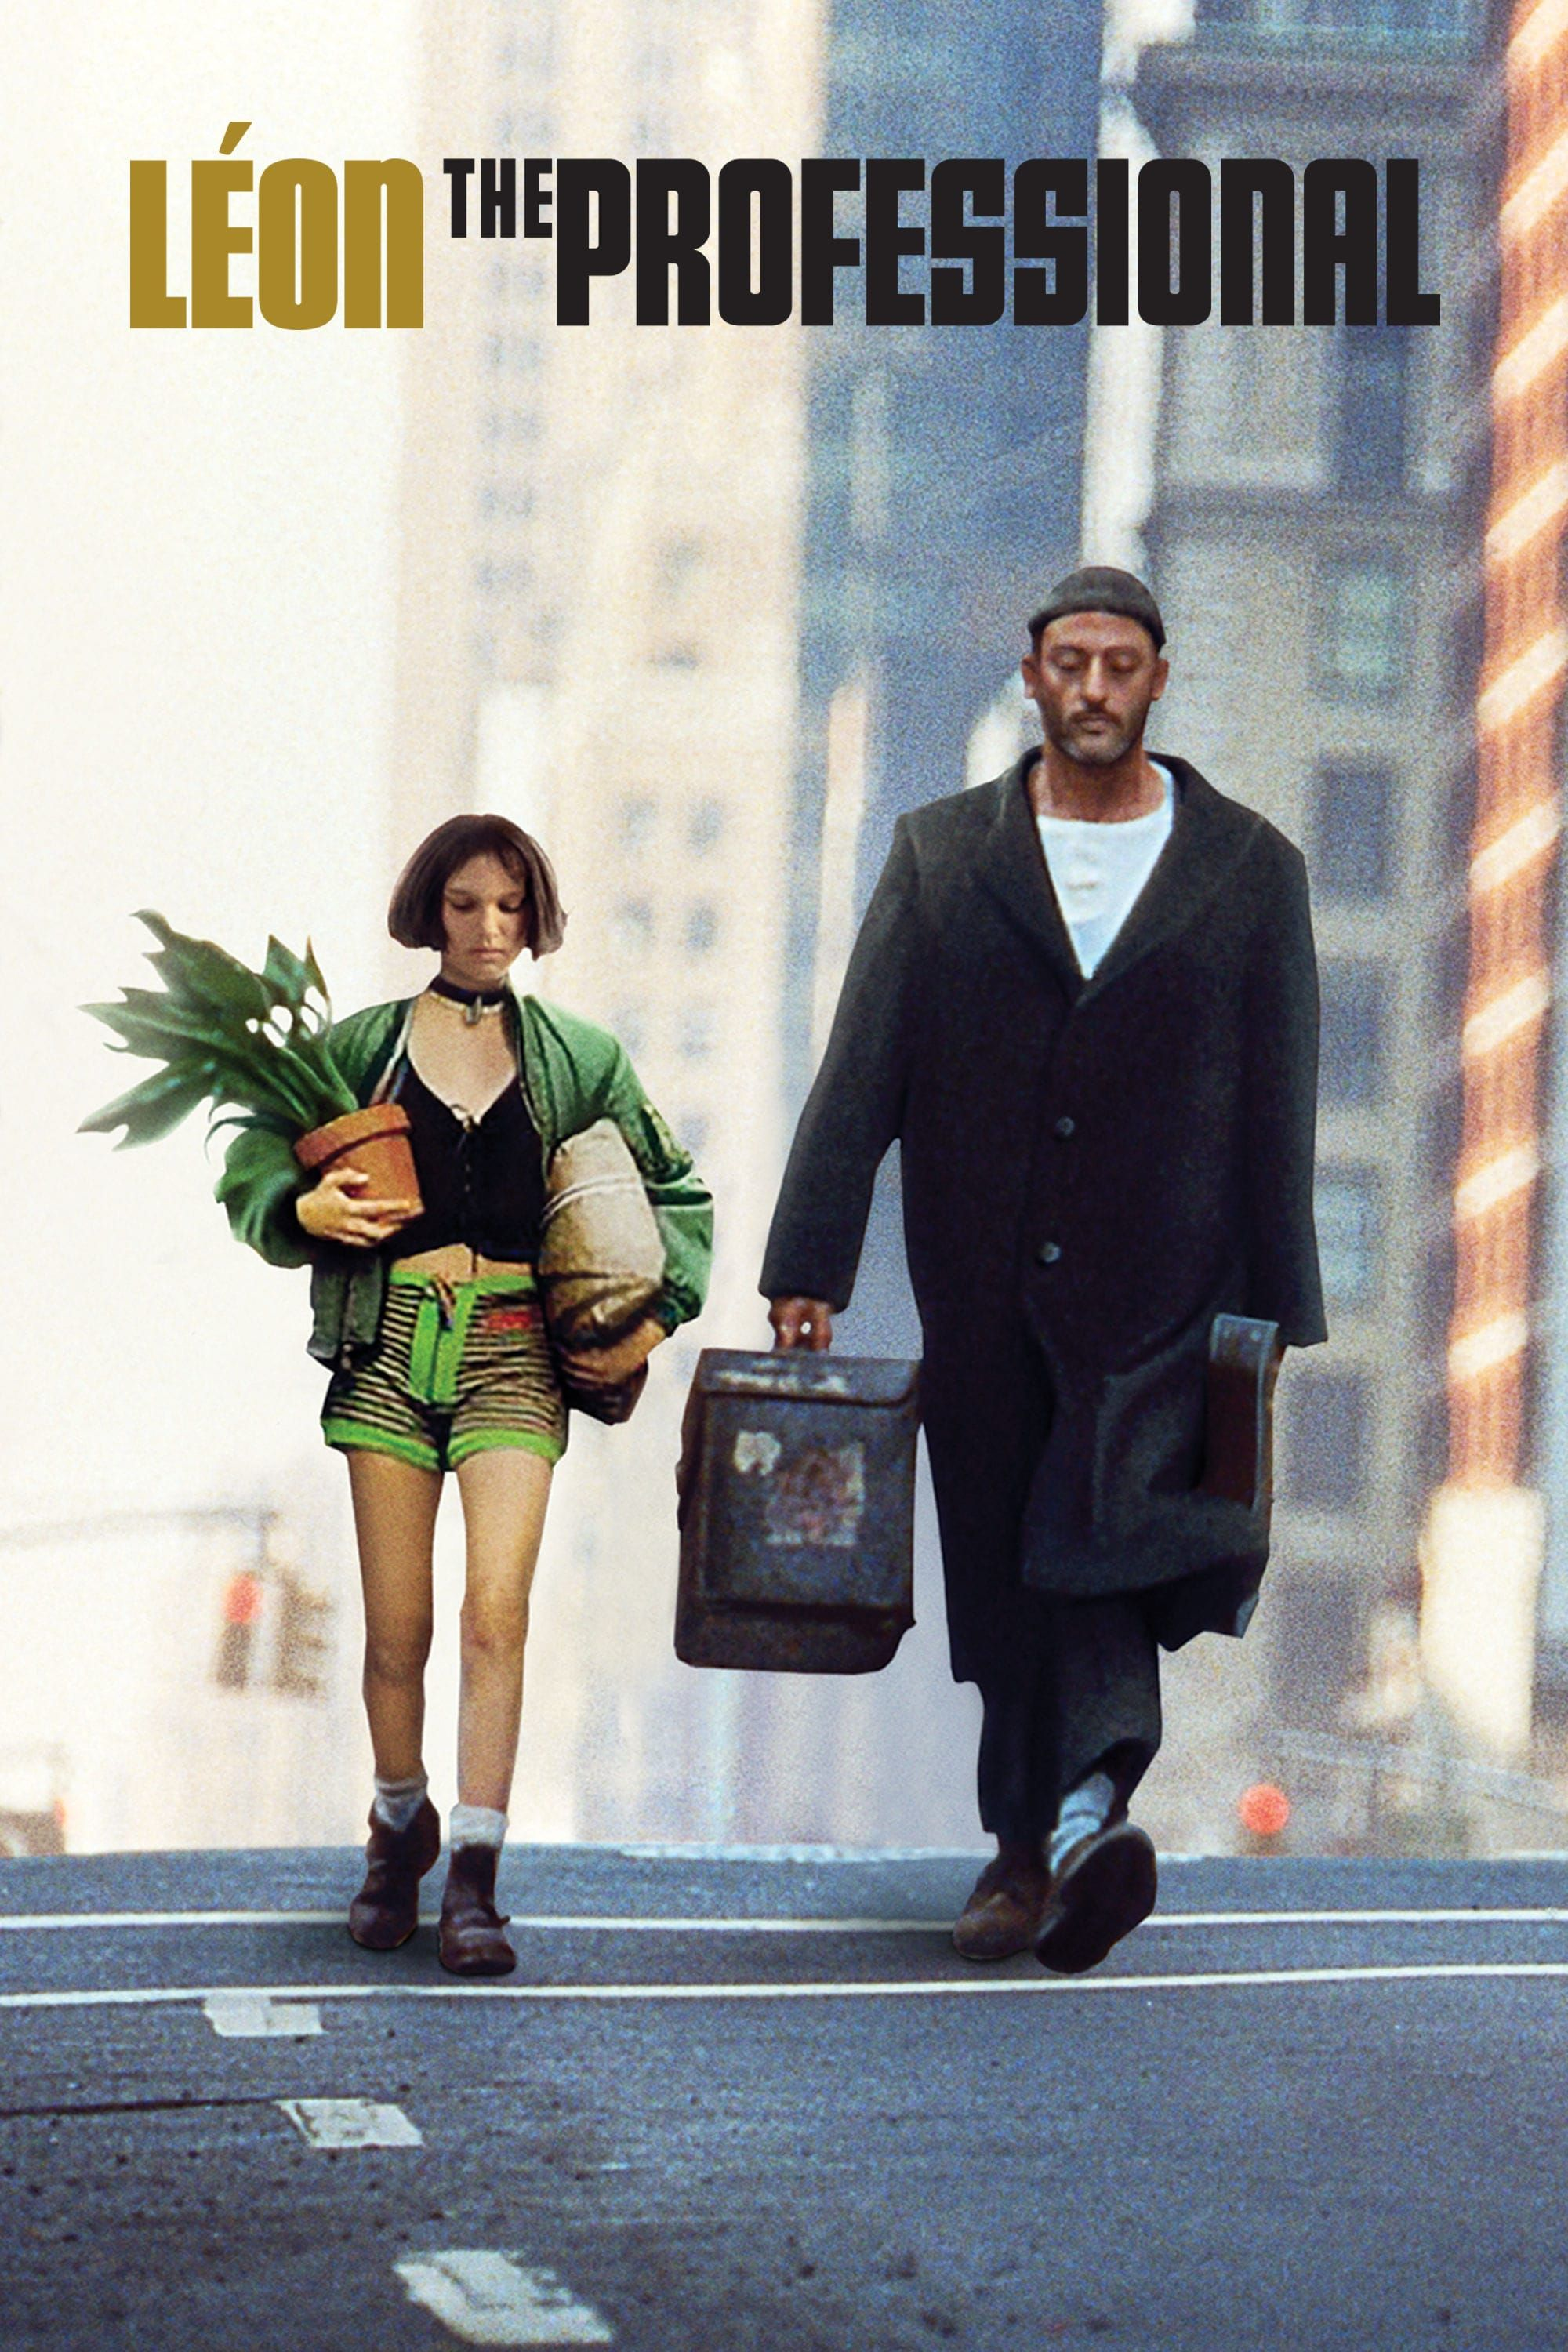 Professional Halloween Makeup Dallas: Image Result For Léon: The Professional